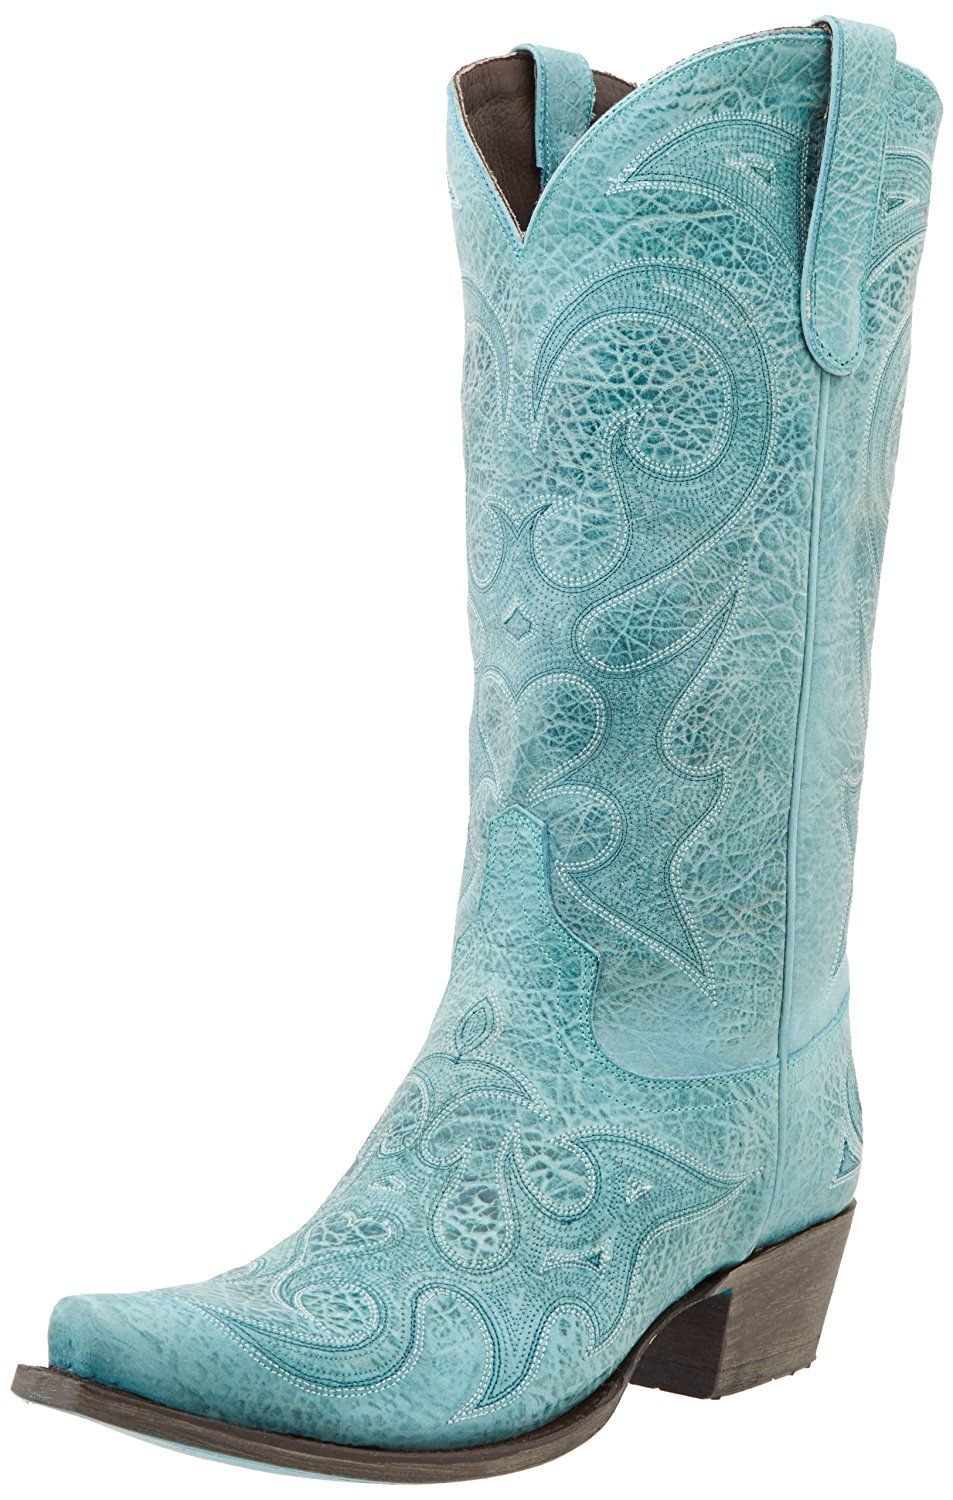 Lane Boots Women's Lovesick Western Boot >>> You can find more details by visiting the image link.